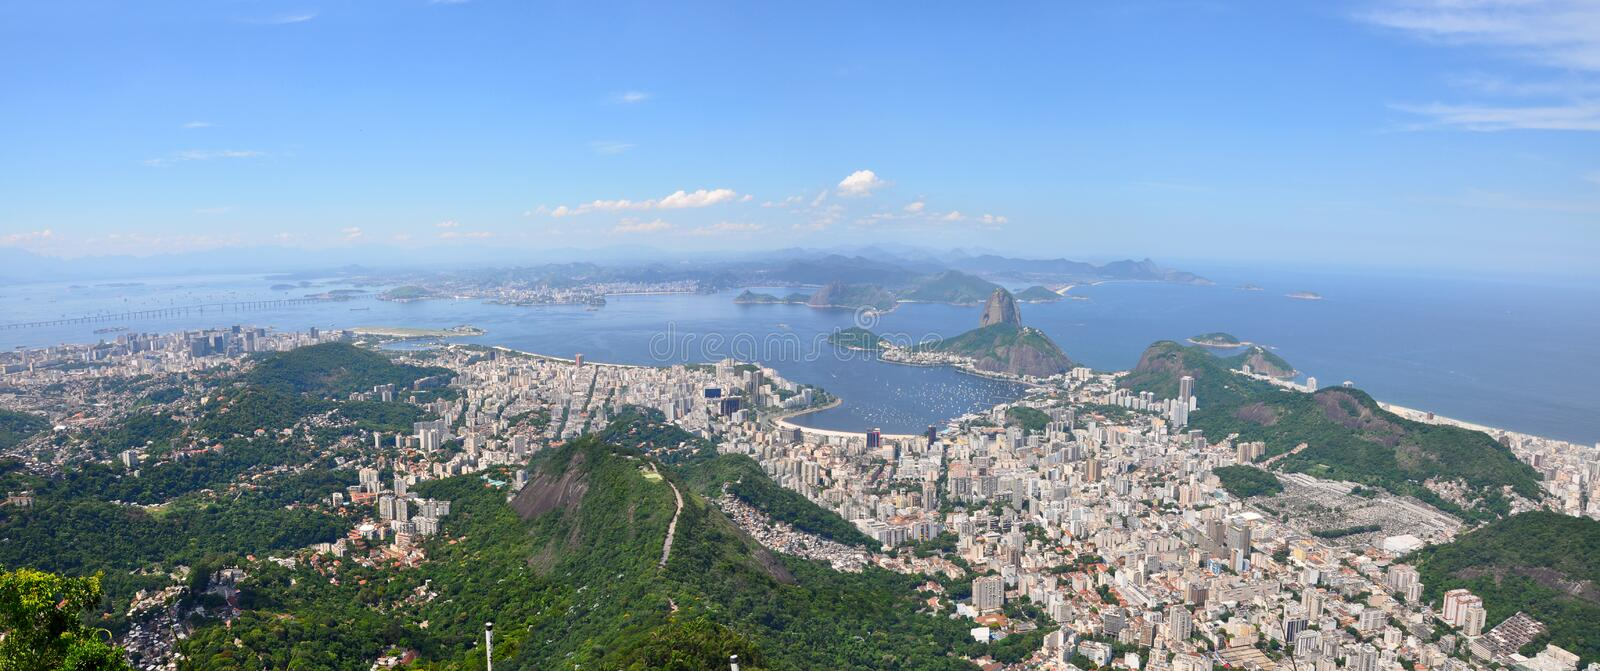 Suggar Loaf, Botafogo, Copacabana beach viewed from Corcovado. Rio de Janeiro, Brazil. Suggar Loaf, Botafogo, Copacabana beach viewed from Corcovado stock photos